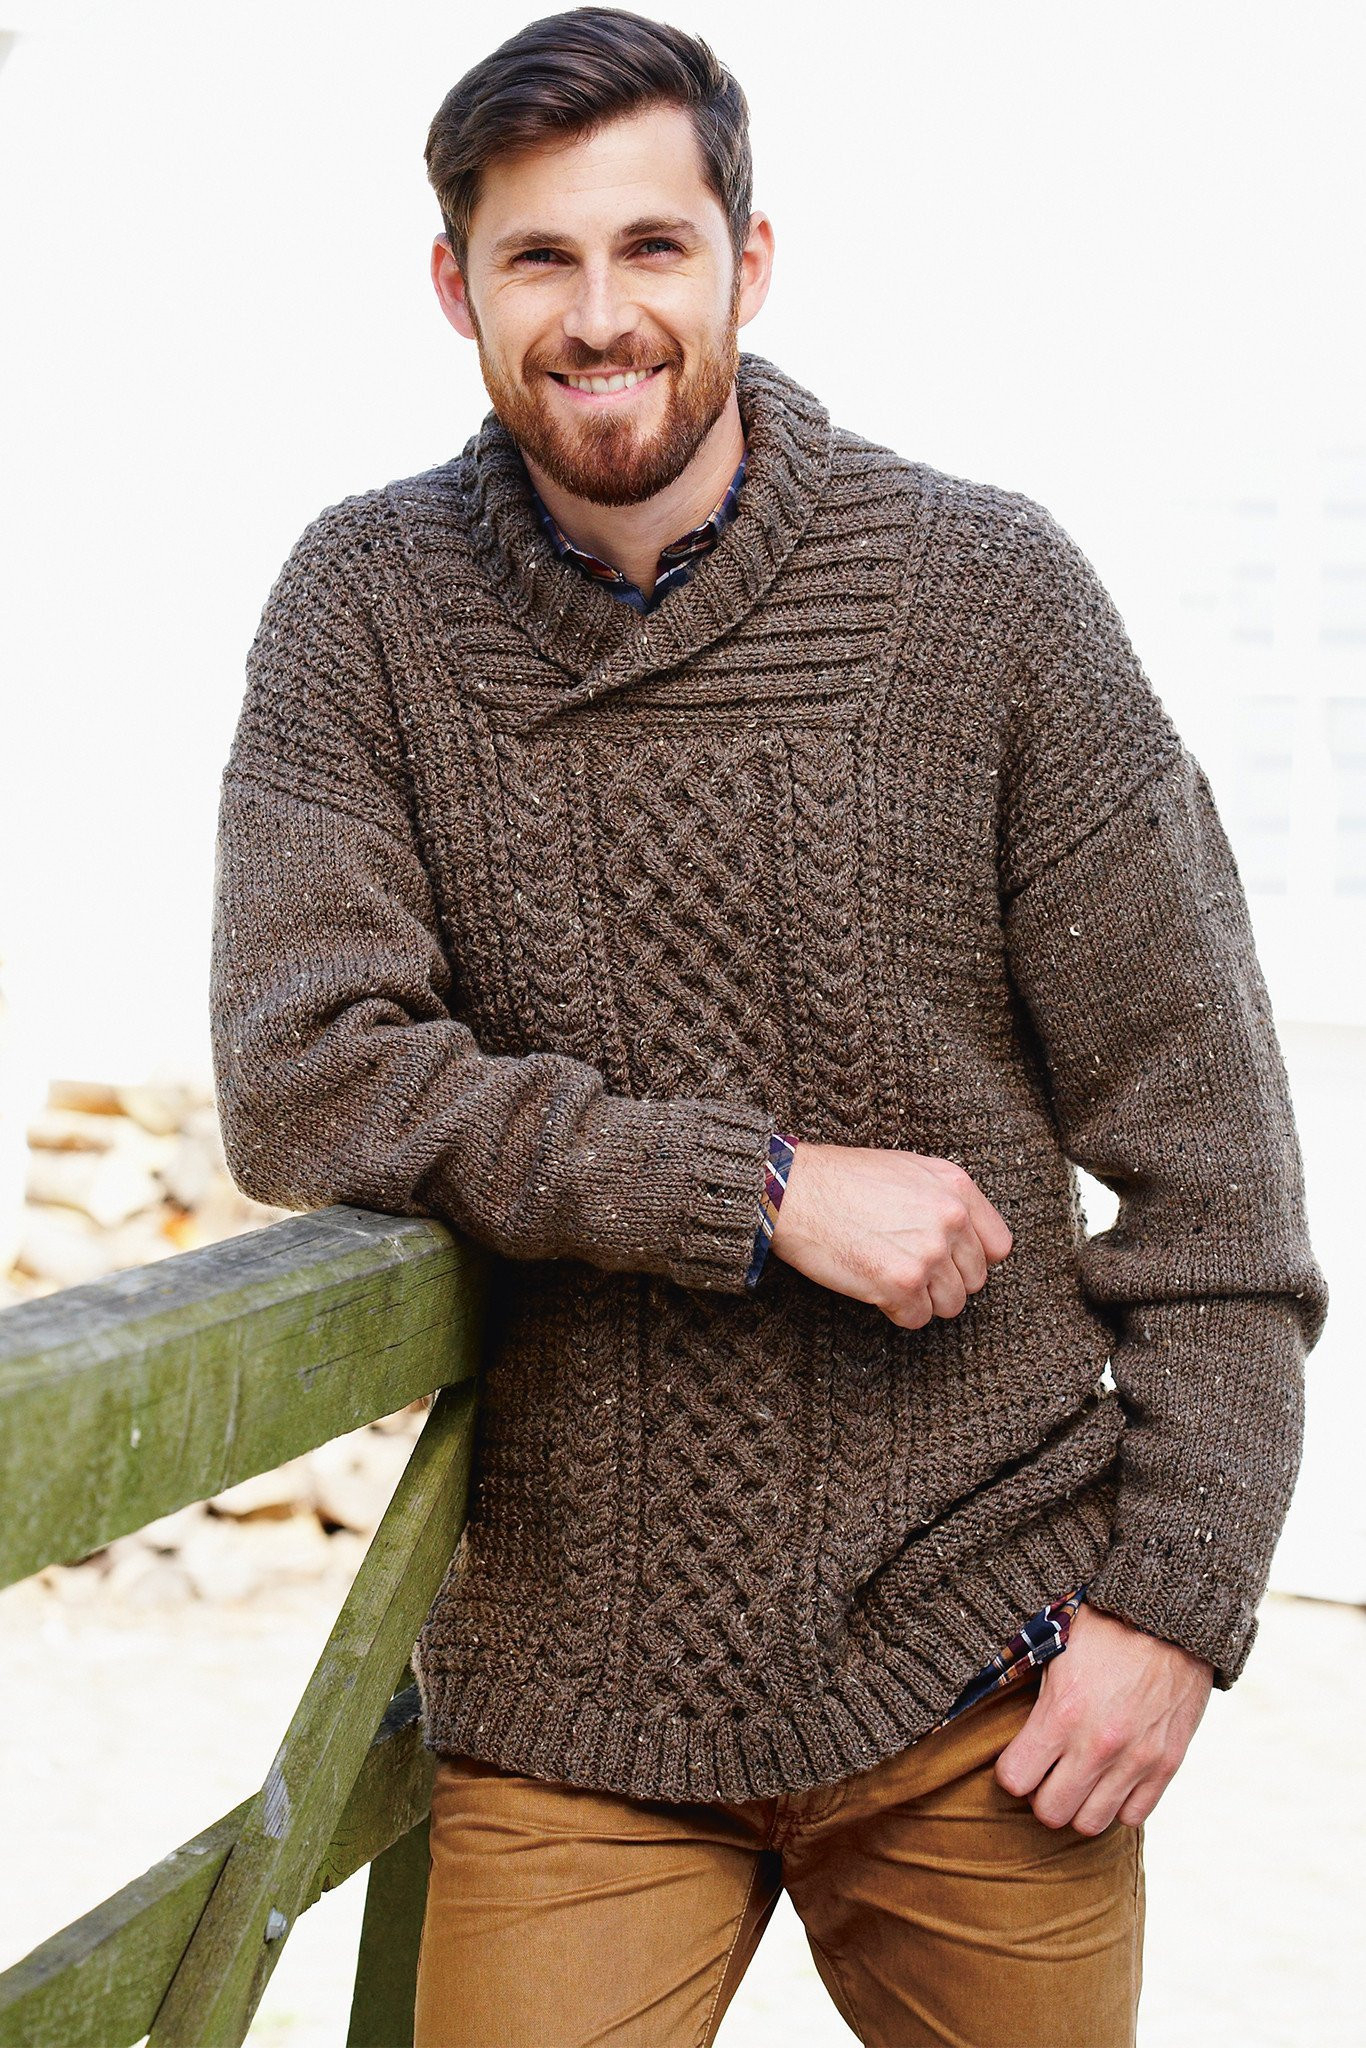 Aran Jumper Knitting Patterns Mens Aran Sweater Knitting Pattern